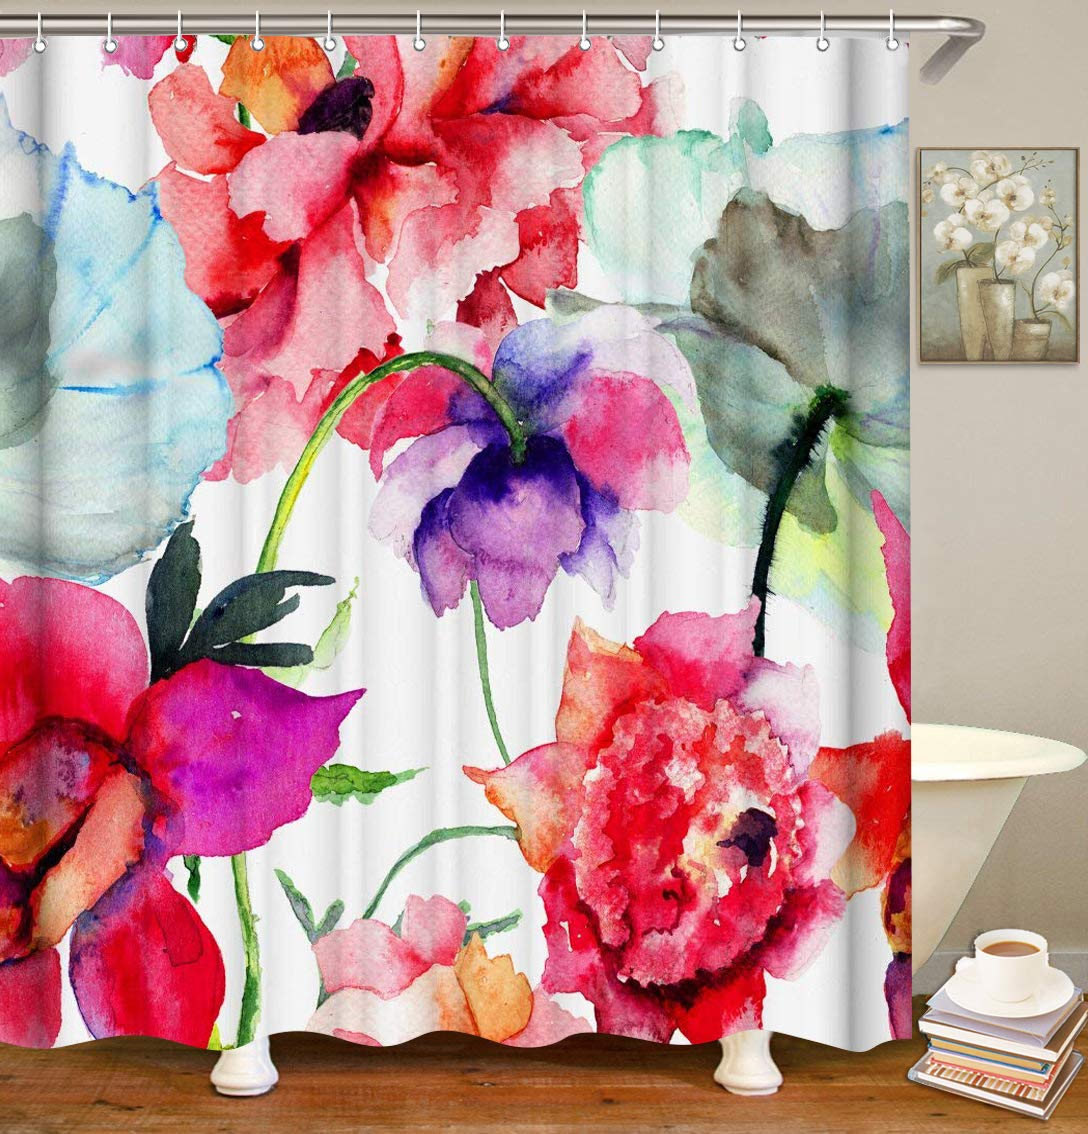 LIVILAN Aestheticism Shower Curtain Set, Abstract Watercolor Floral Print, Thick Polyester Fabric, Waterproof Machine Washable, 72 X 72 inch, Red